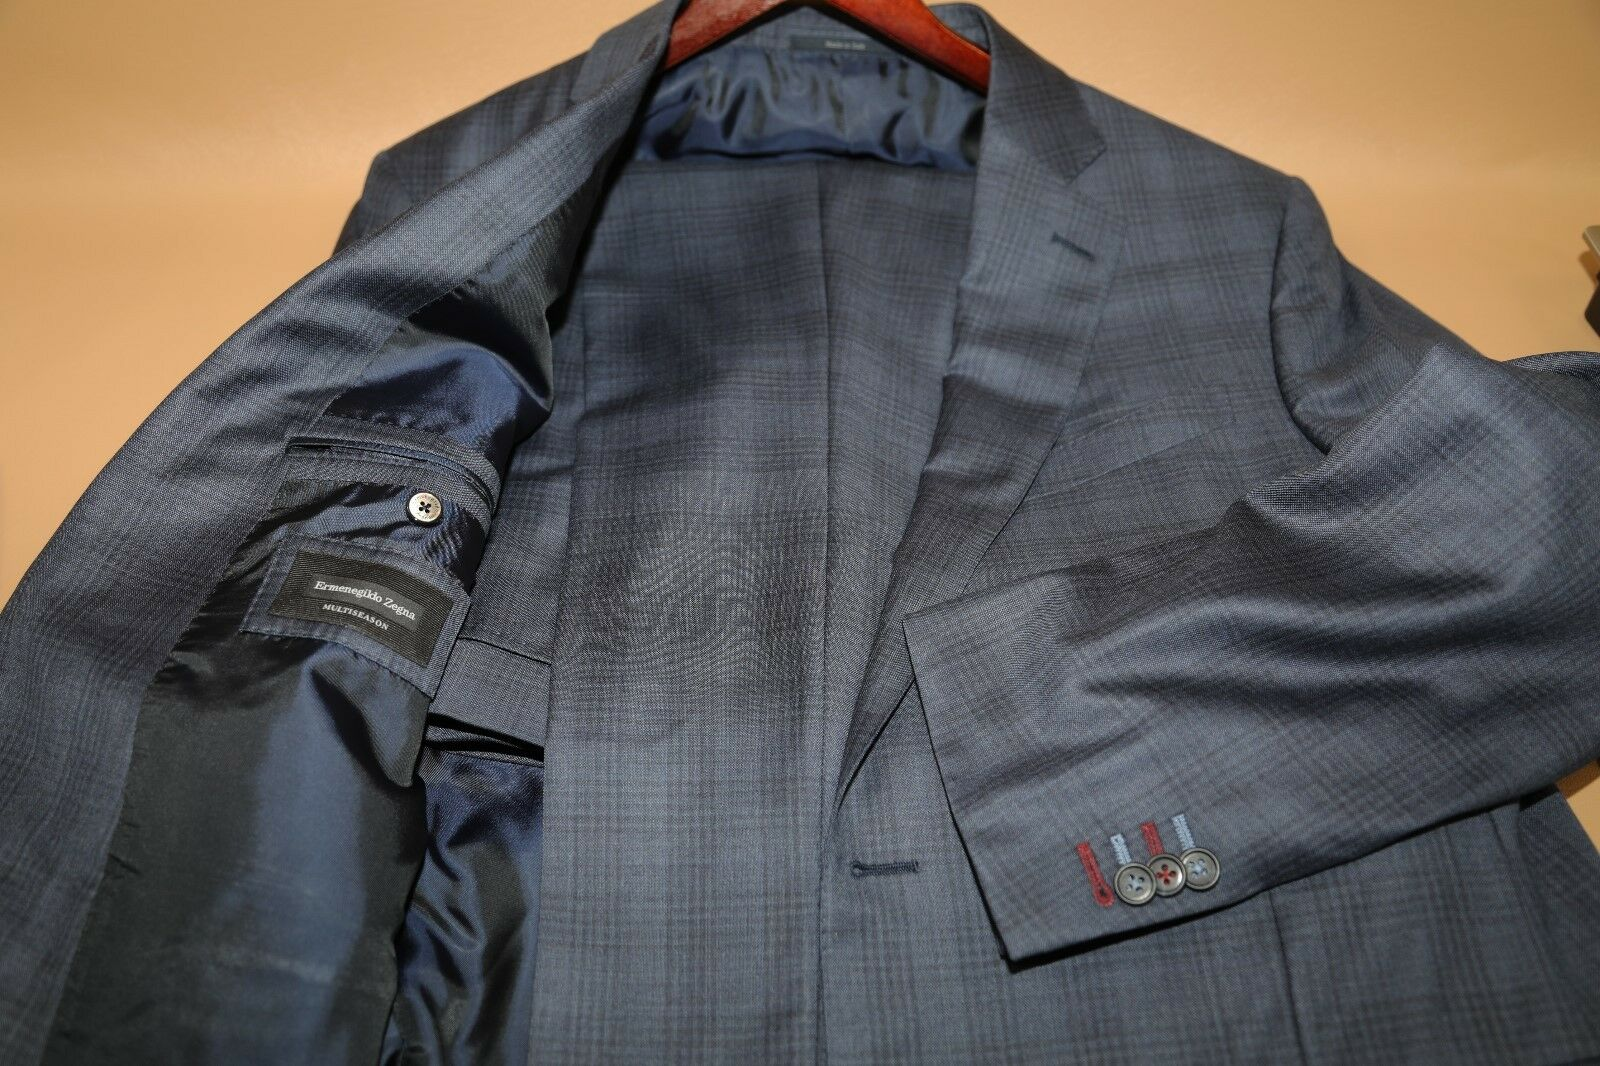 47 Ermenegildo Zegna Multiseason Plaid Two Button Suit Größe 46 L